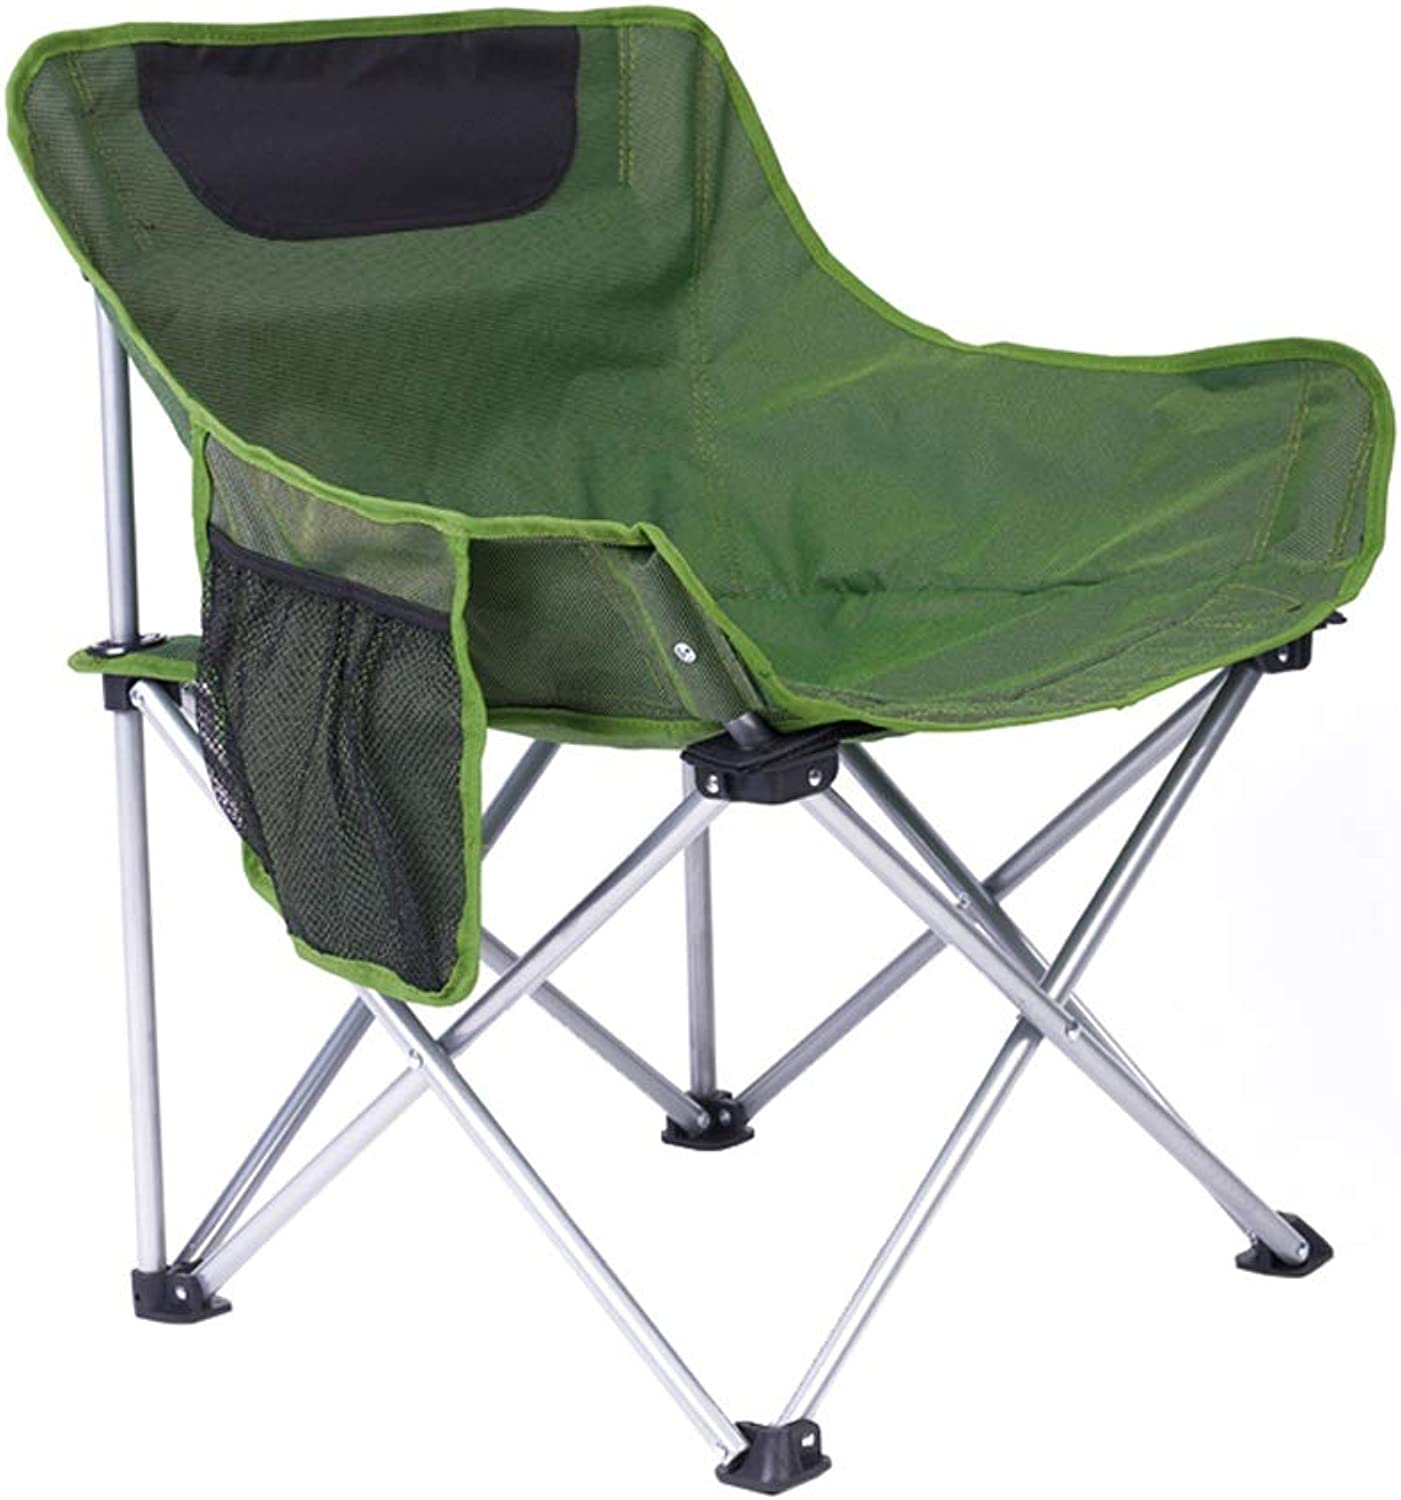 JGWJJ Sofa Camping Chair Oversized Padded Folding Heavy Duty Deluxe Portable Stable for Camping, Hiking, Carry Bag Included, Supports 300 lbs (color   Green)